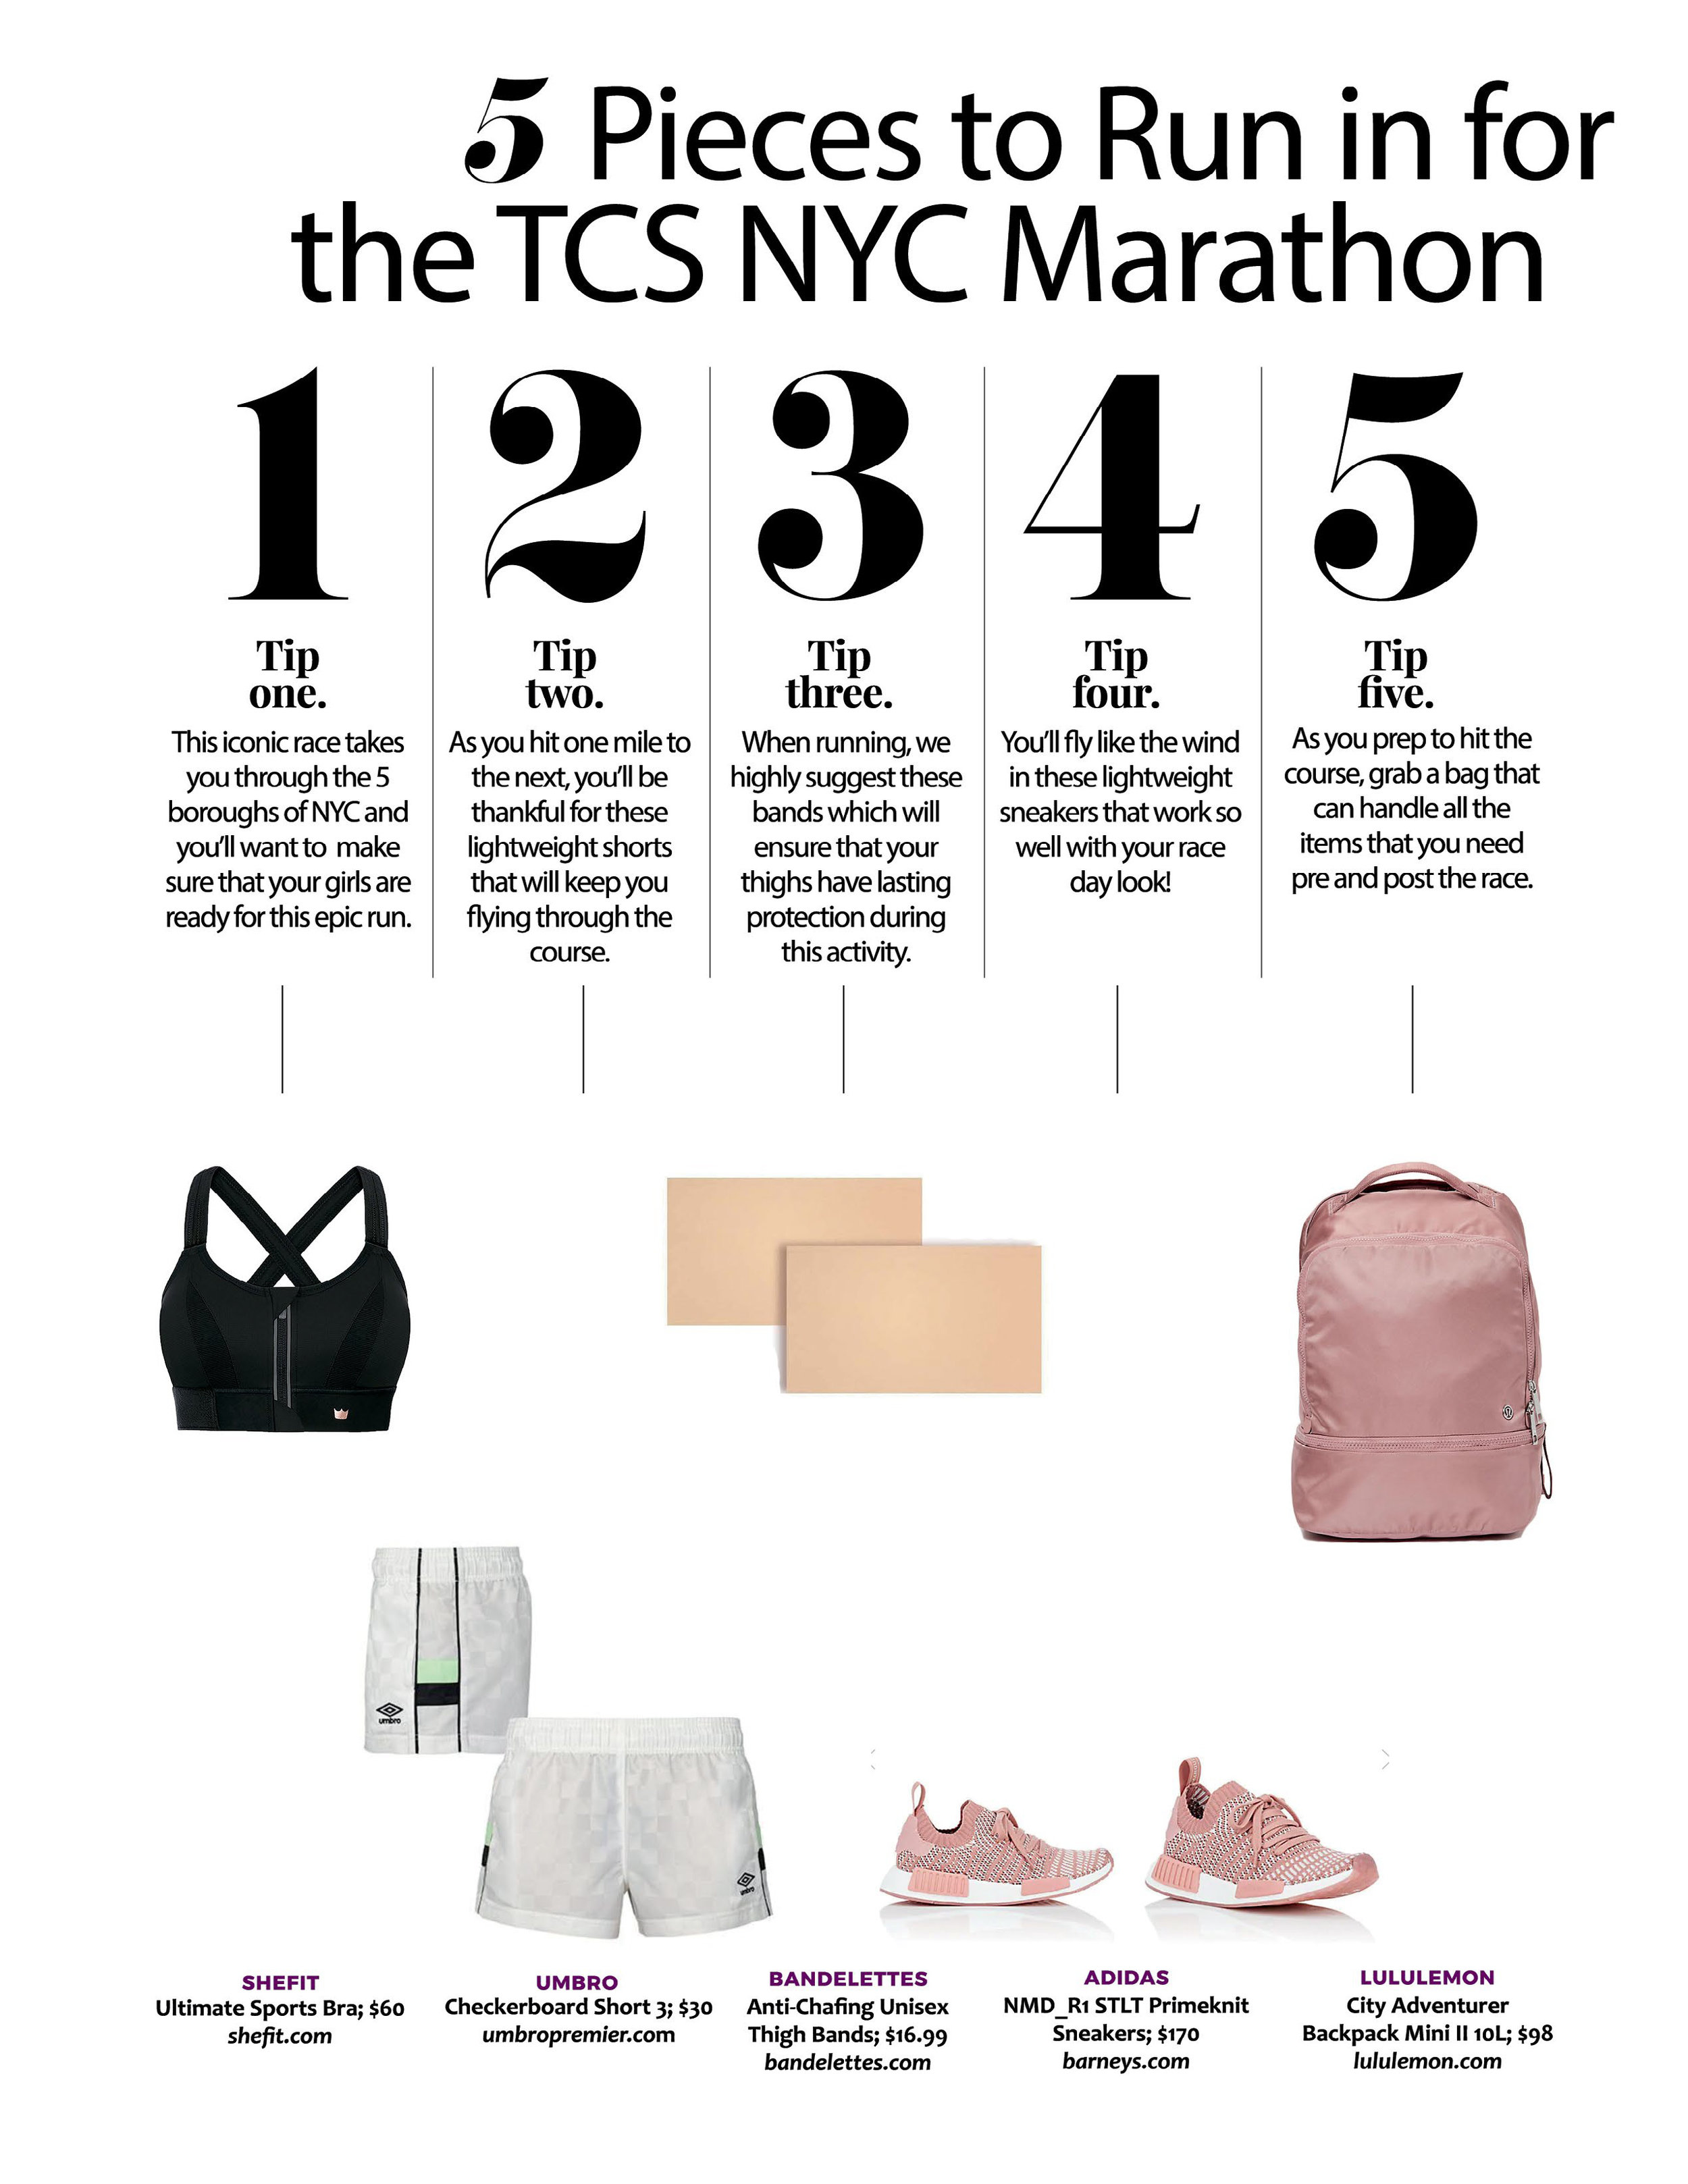 AM OCT 5 PIECES TO RUN IN FOR THE TCS NYC MARATHON.jpg